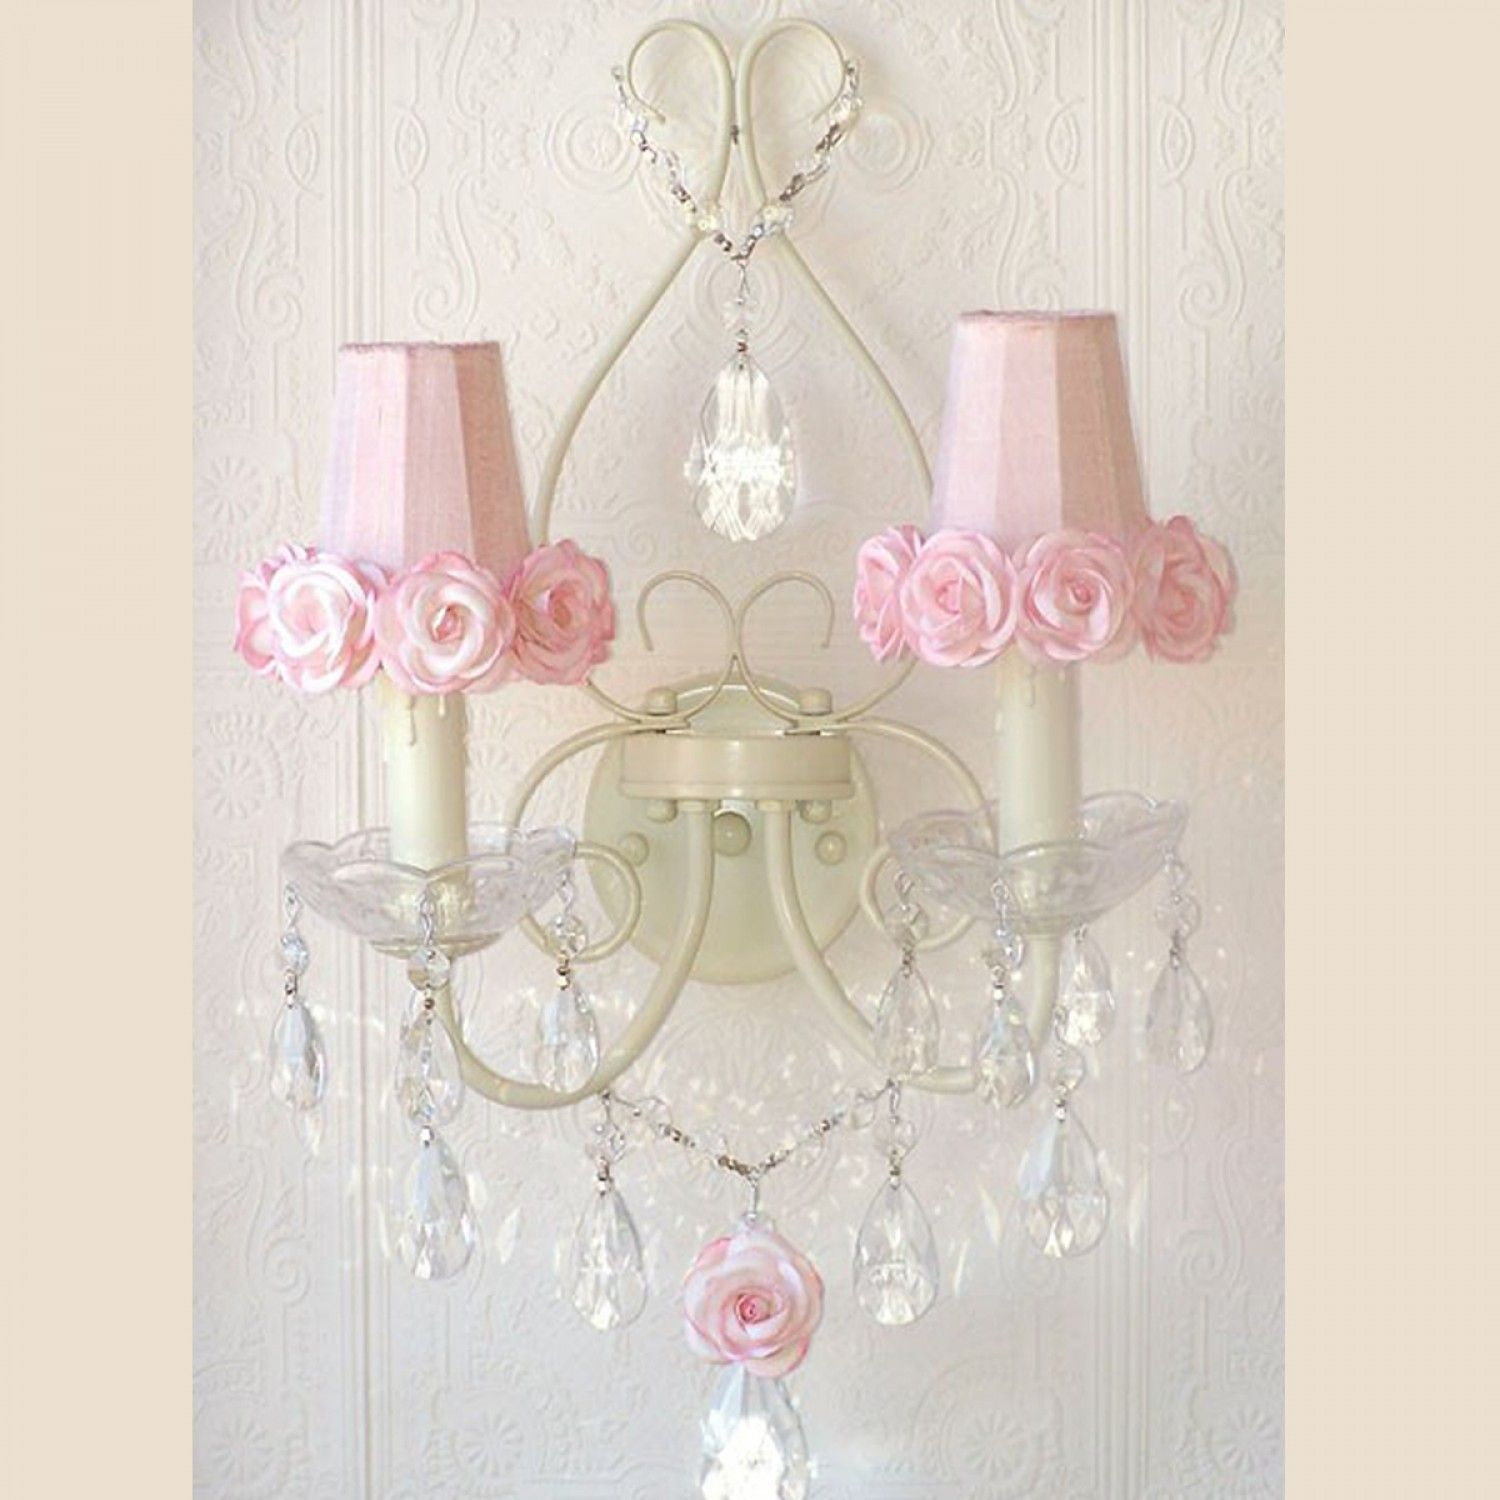 Exquisite Rose Double Light Wall Sconce with Pink Rose Shades